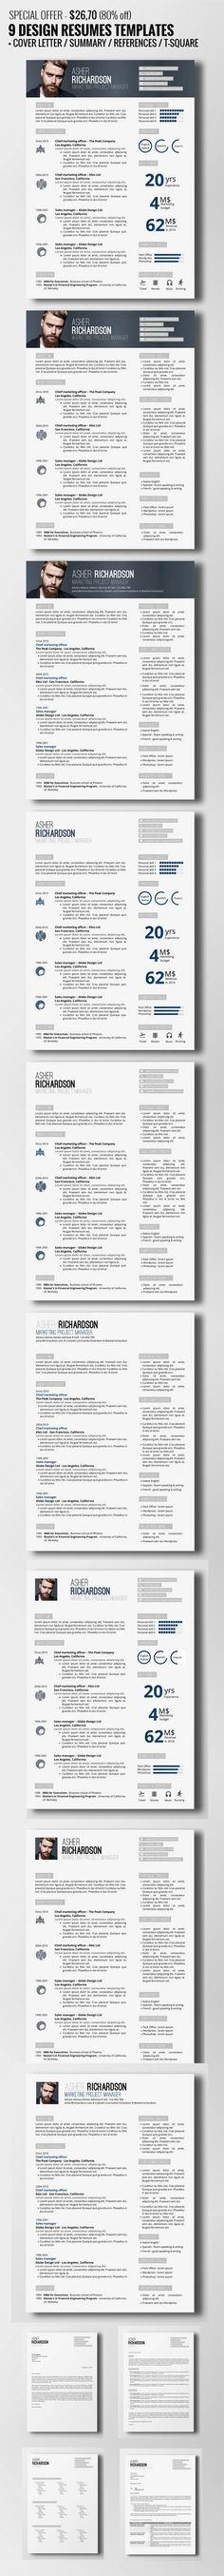 435 best Resume images on Pinterest Resume design, Design resume - create the perfect resume